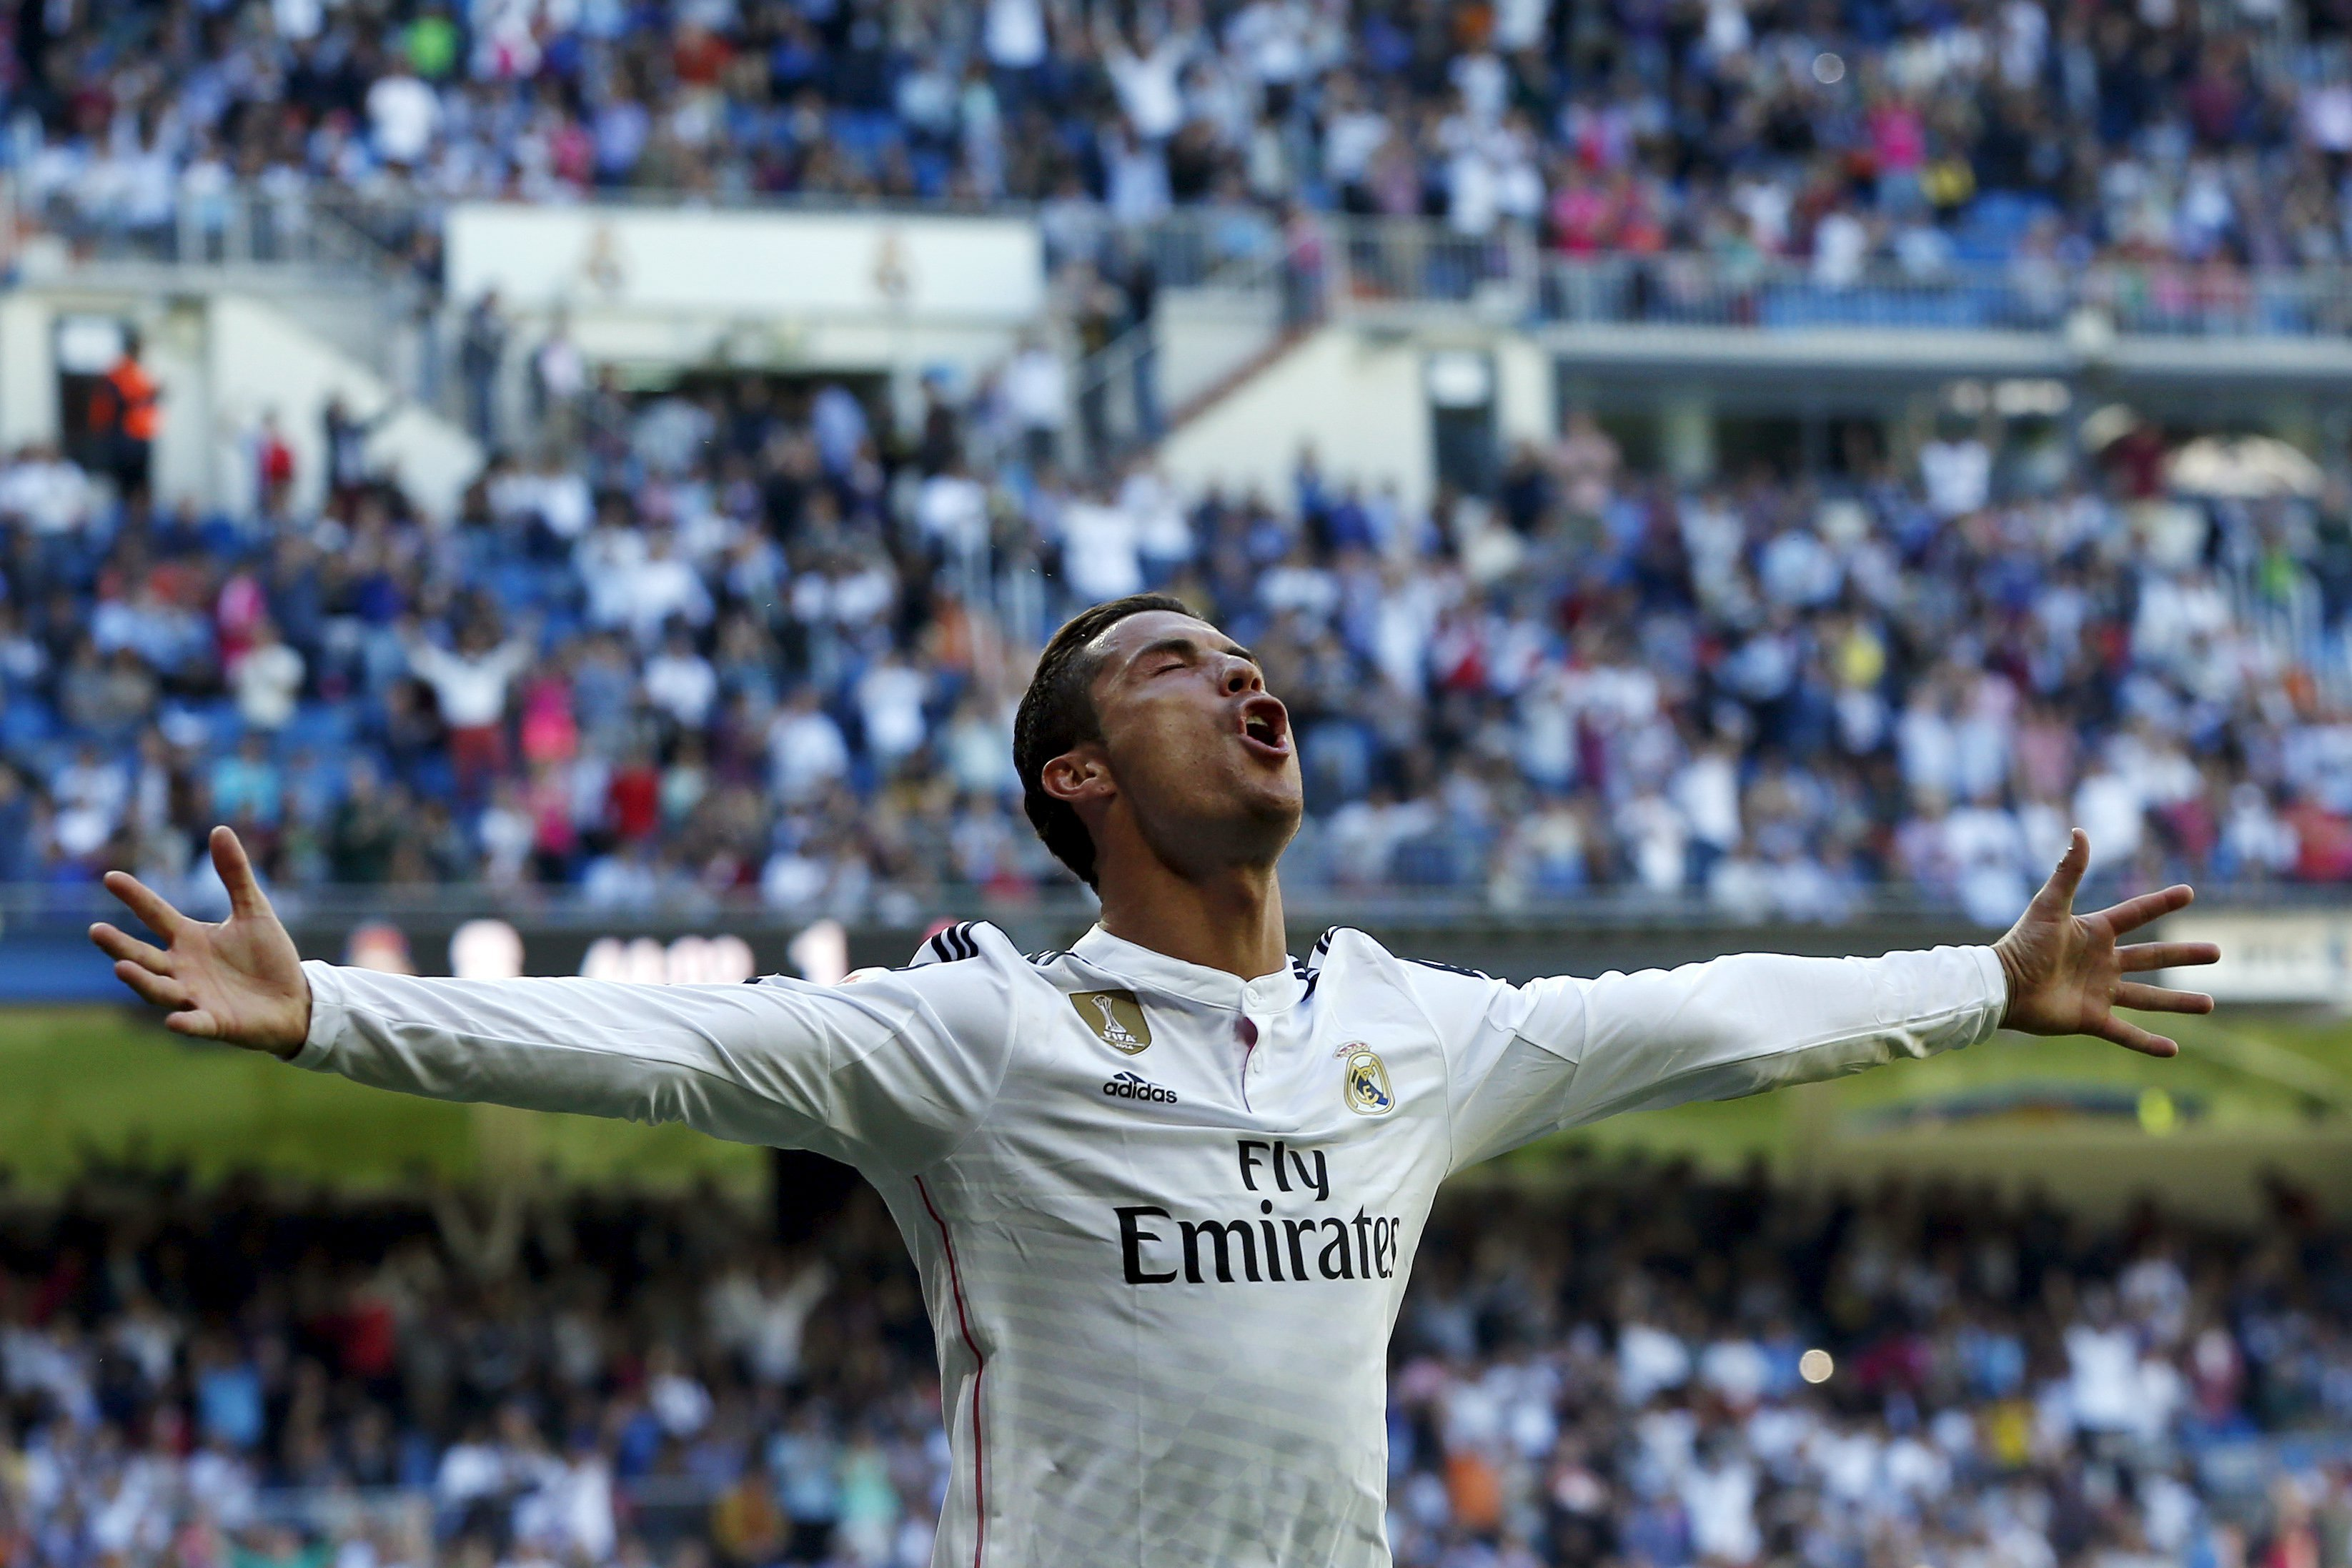 Real Madrid's Cristiano Ronaldo celebrates his fifth goal against Granada during their Spanish first division soccer match at Santiago Bernabeu stadium in Madrid on April 5, 2015.